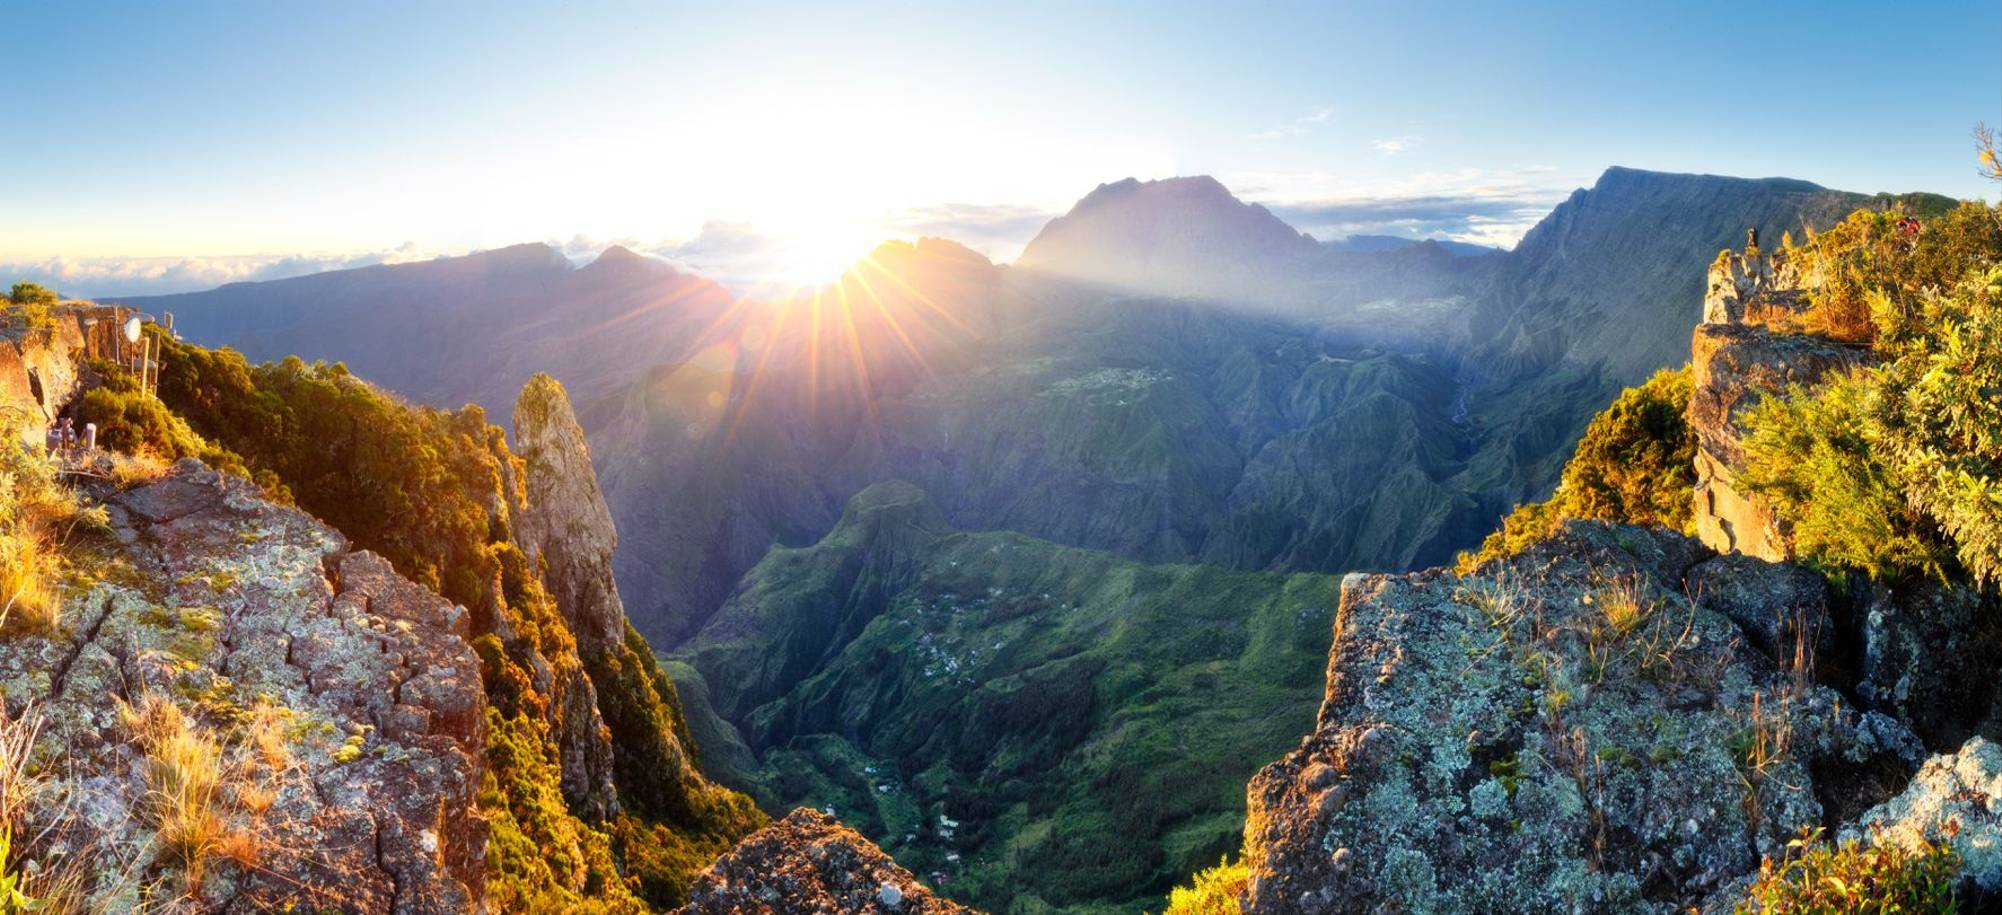 27 Day   Reunion Island   Piton Des Neiges  Itinerary Desktop